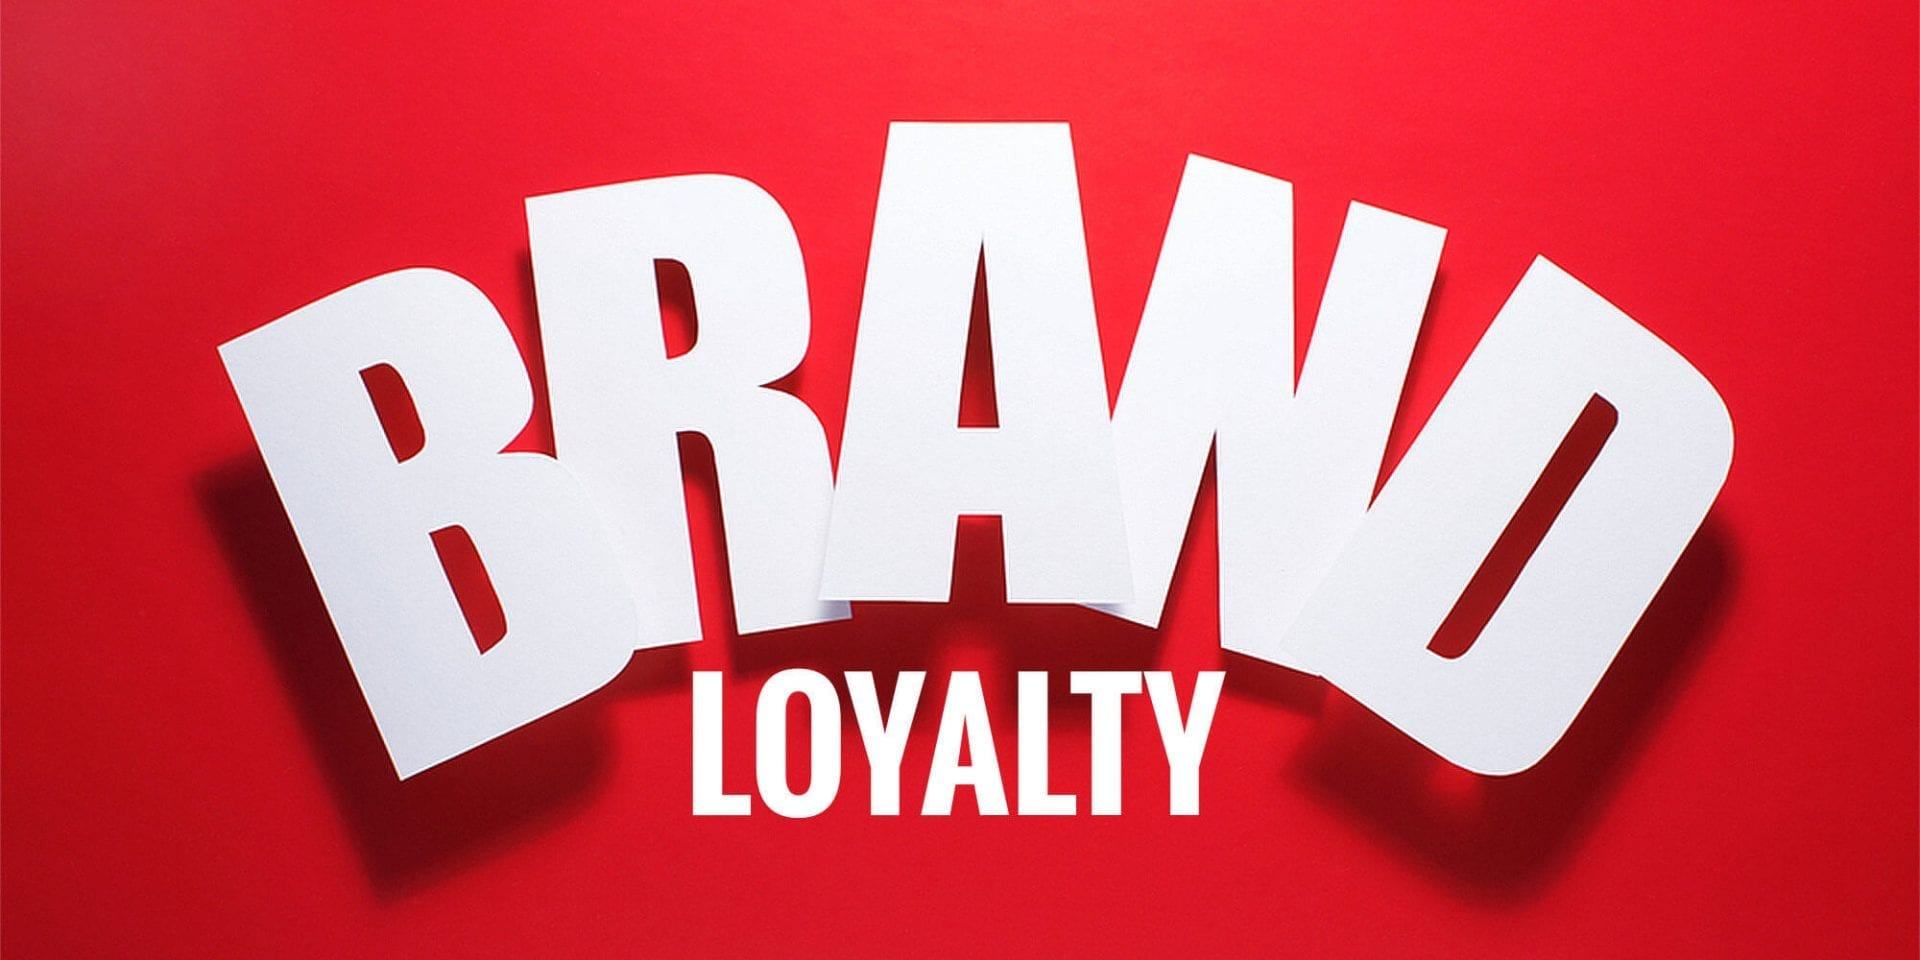 Big white text on red background saying Brand Loyalty